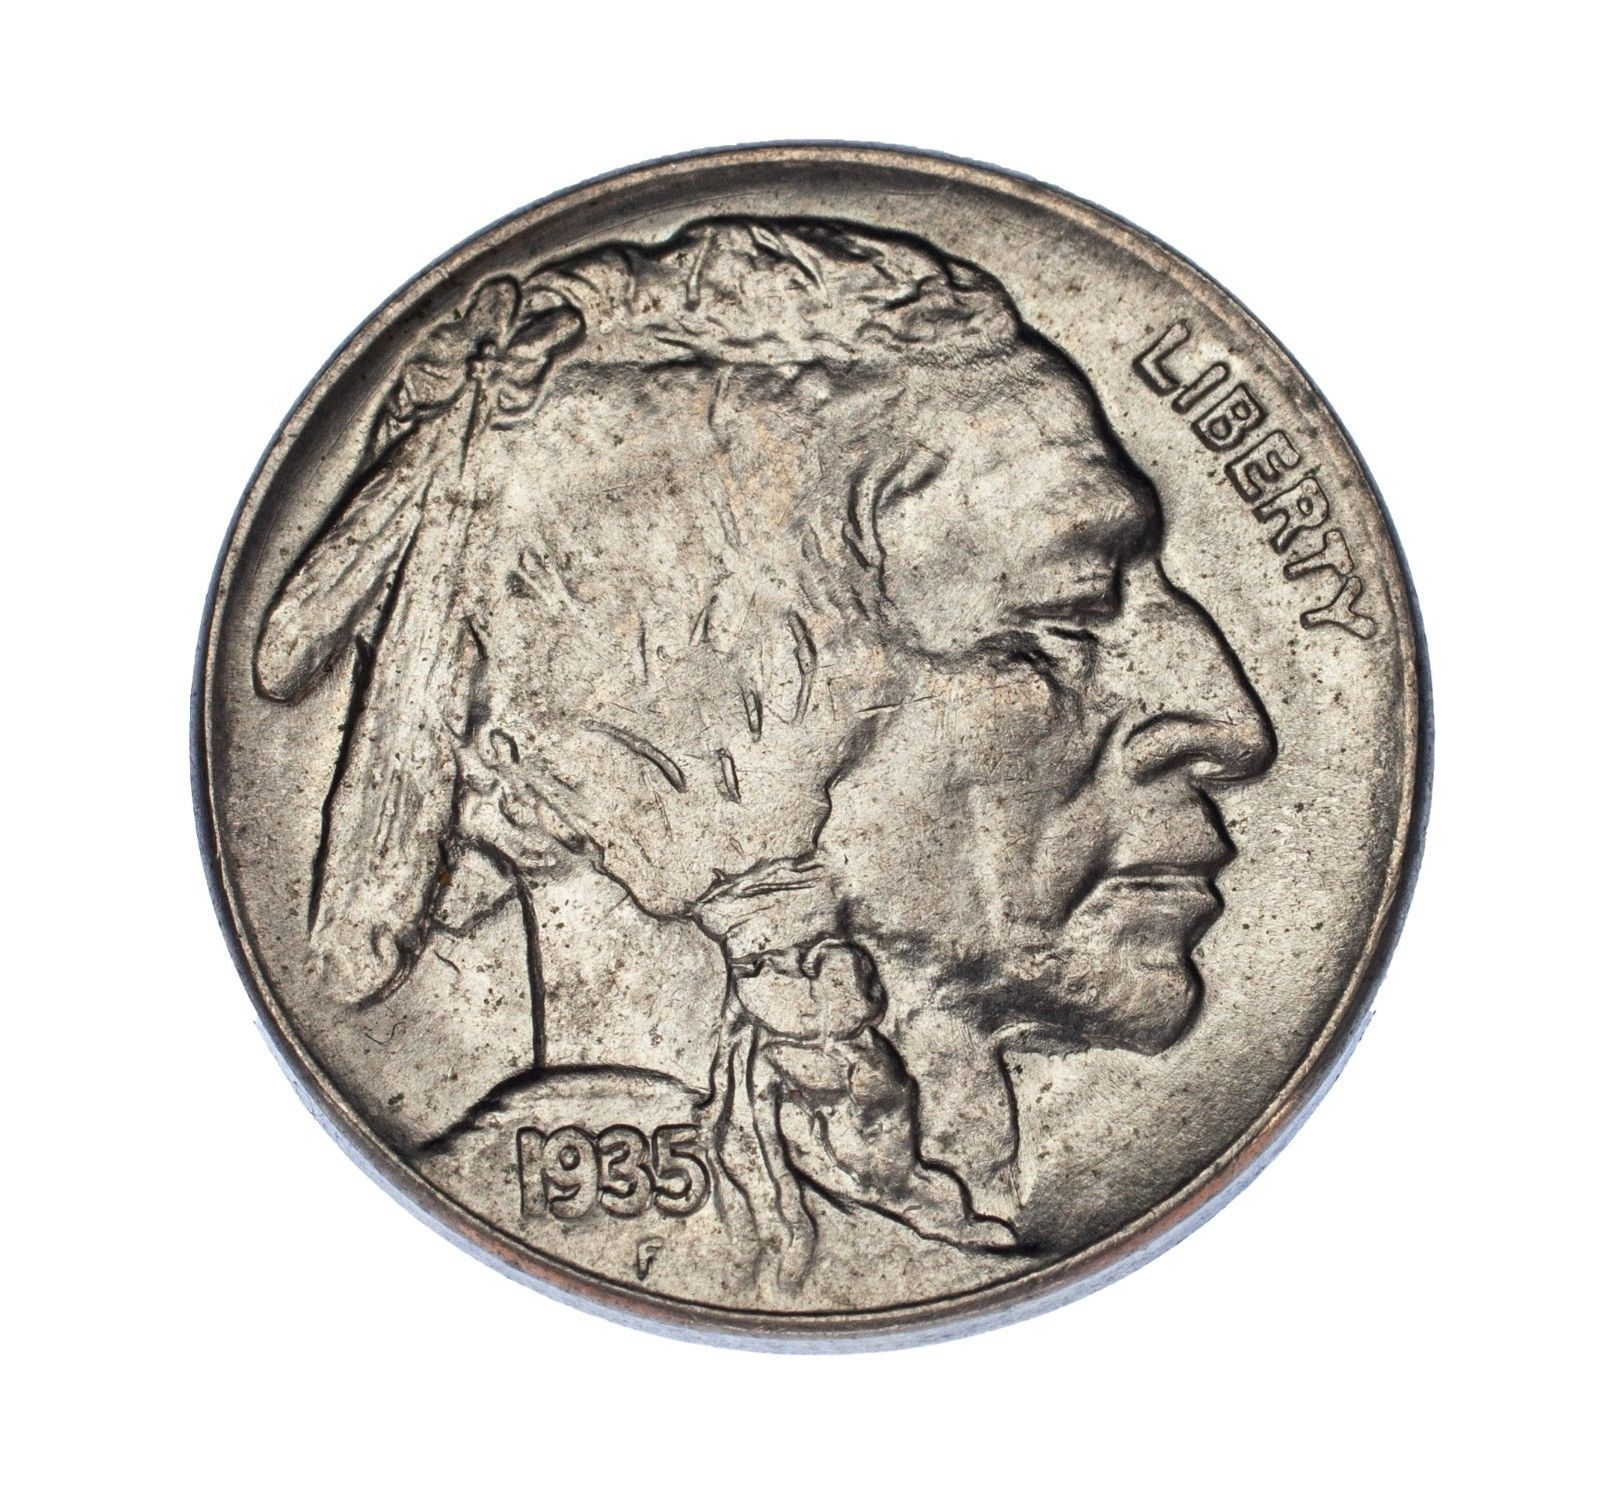 Primary image for 1935 5C Buffalo Nickel Choice BU Condition, Excellent Eye Appeal, Mint Luster!